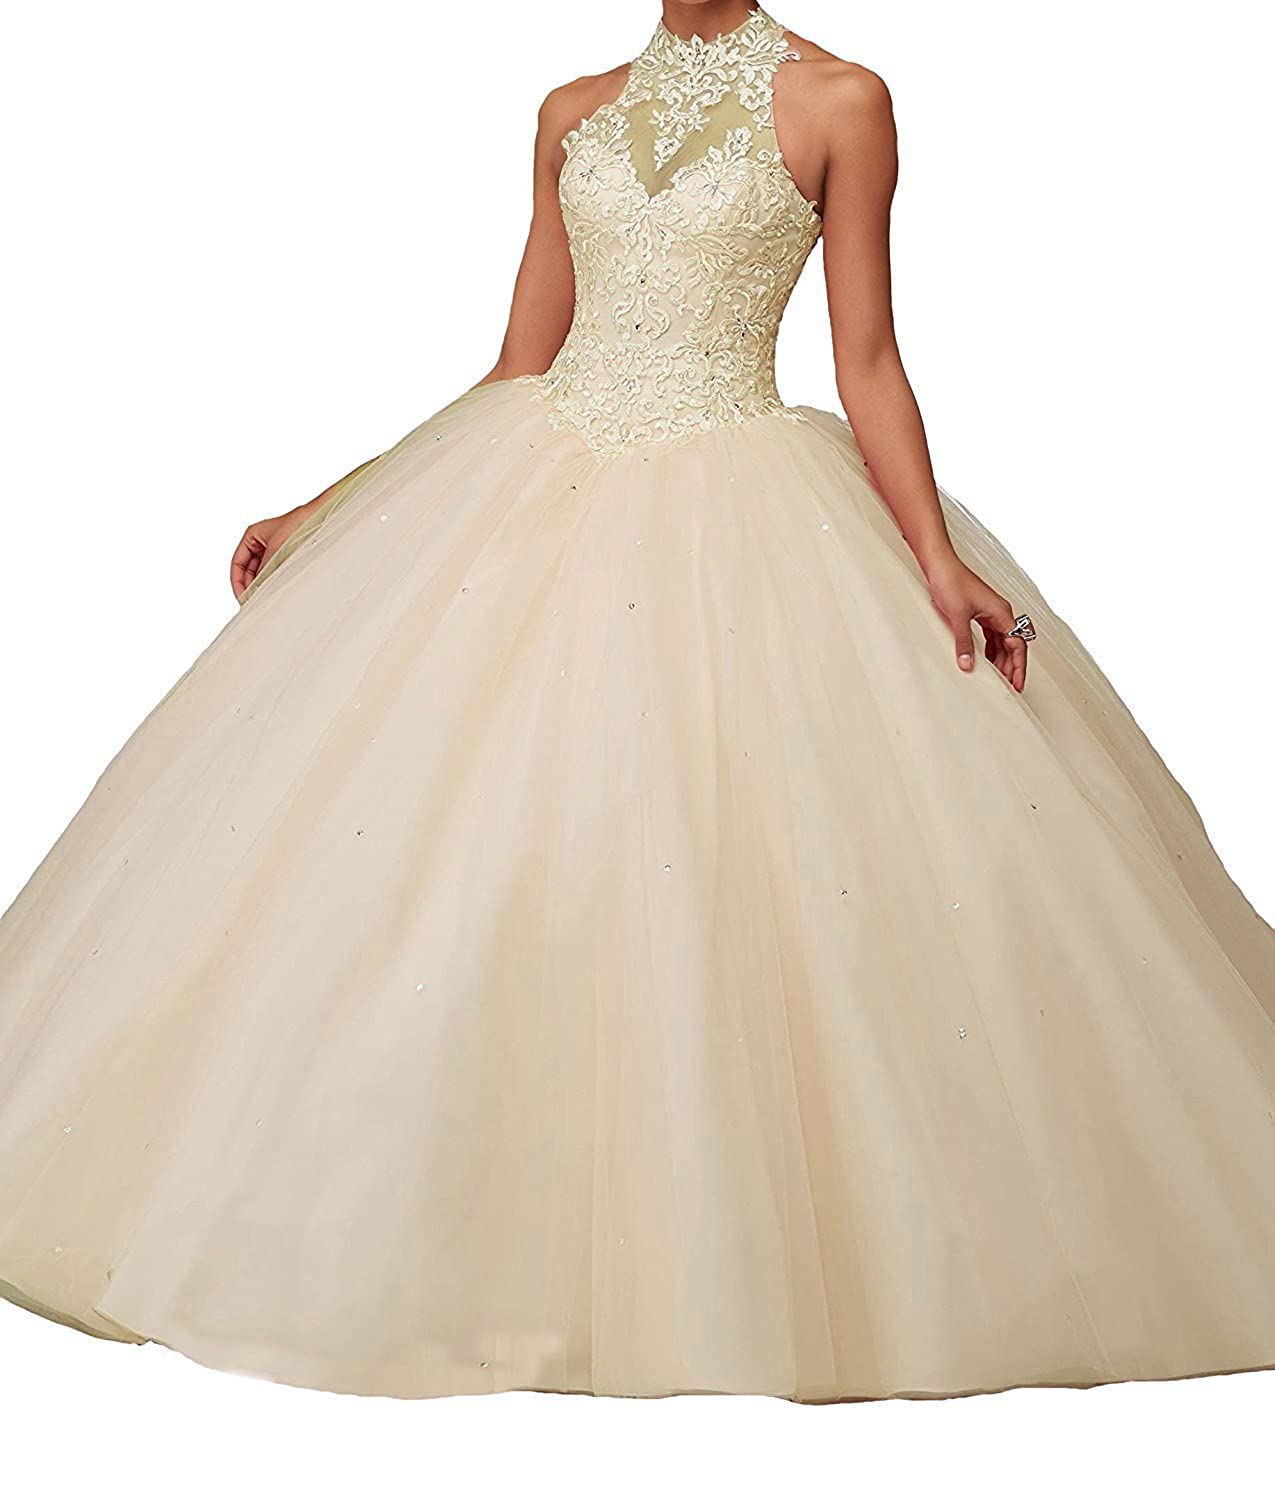 ac1a5bd0fa6 Amazon.com  Women s Lace Pageant Quinceanera Dresses Ball Gown Halter Prom  Evening Gowns  Clothing